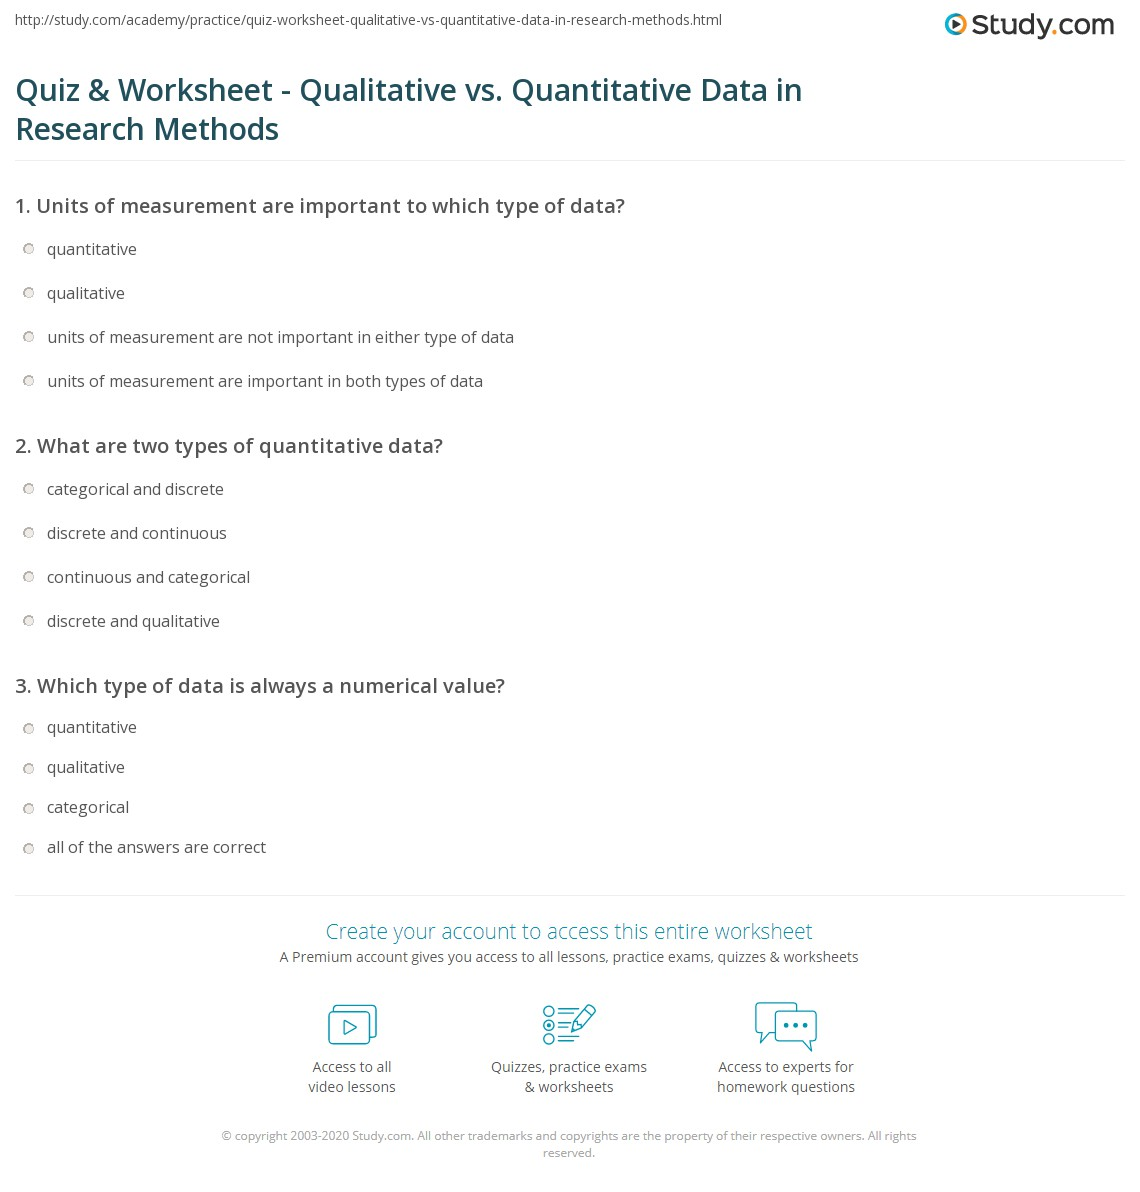 Quiz & Worksheet - Qualitative vs. Quantitative Data in Research ...